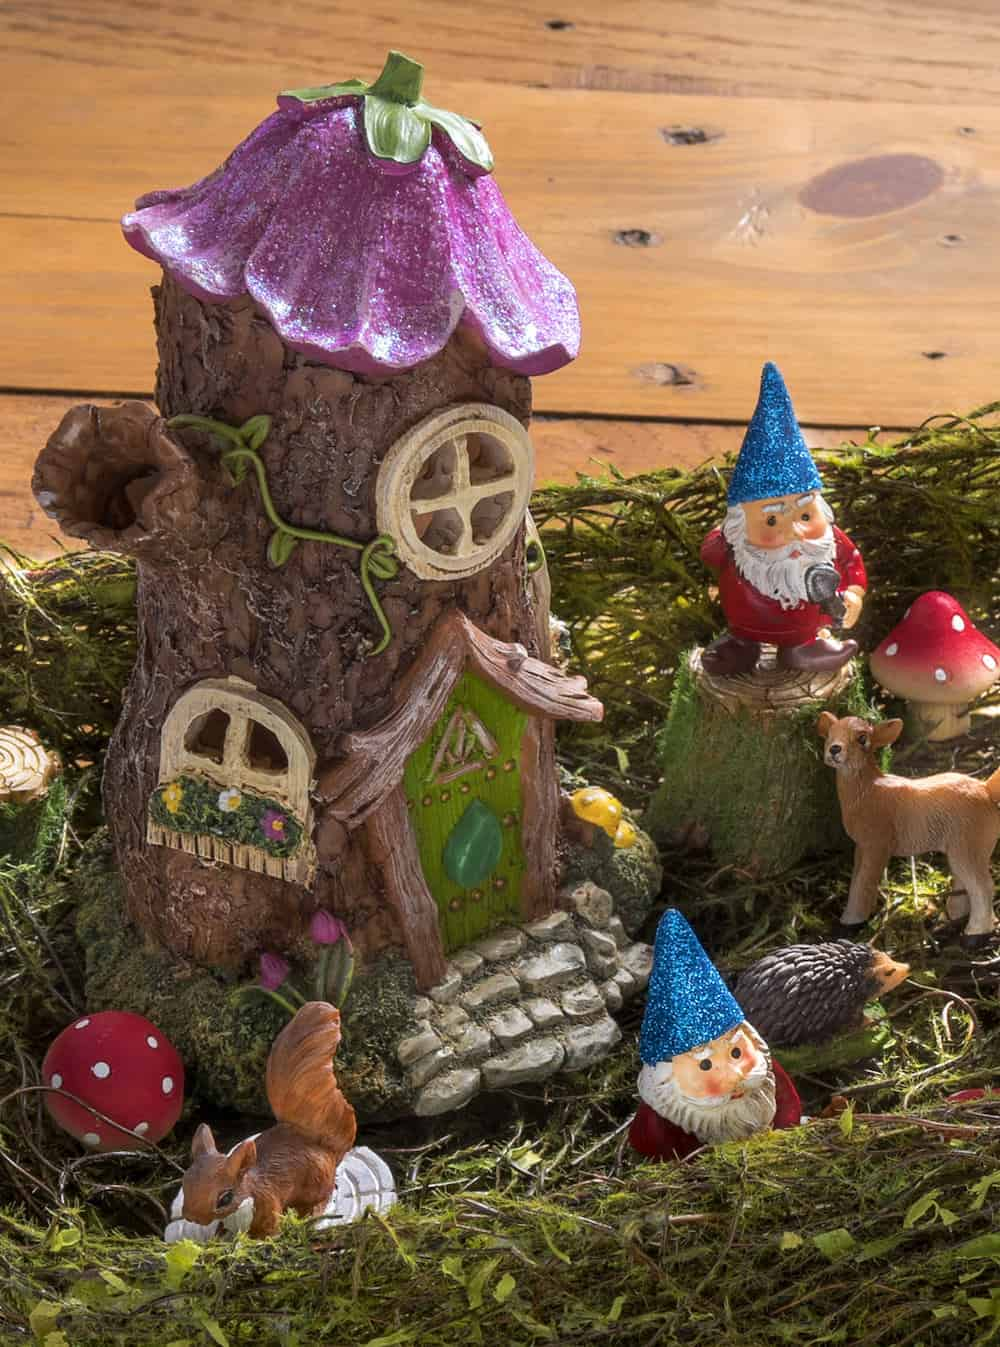 Bon Create A Desktop Fairy Garden With Gnomes, Woodland Animals, And Other  Forest Accessories.